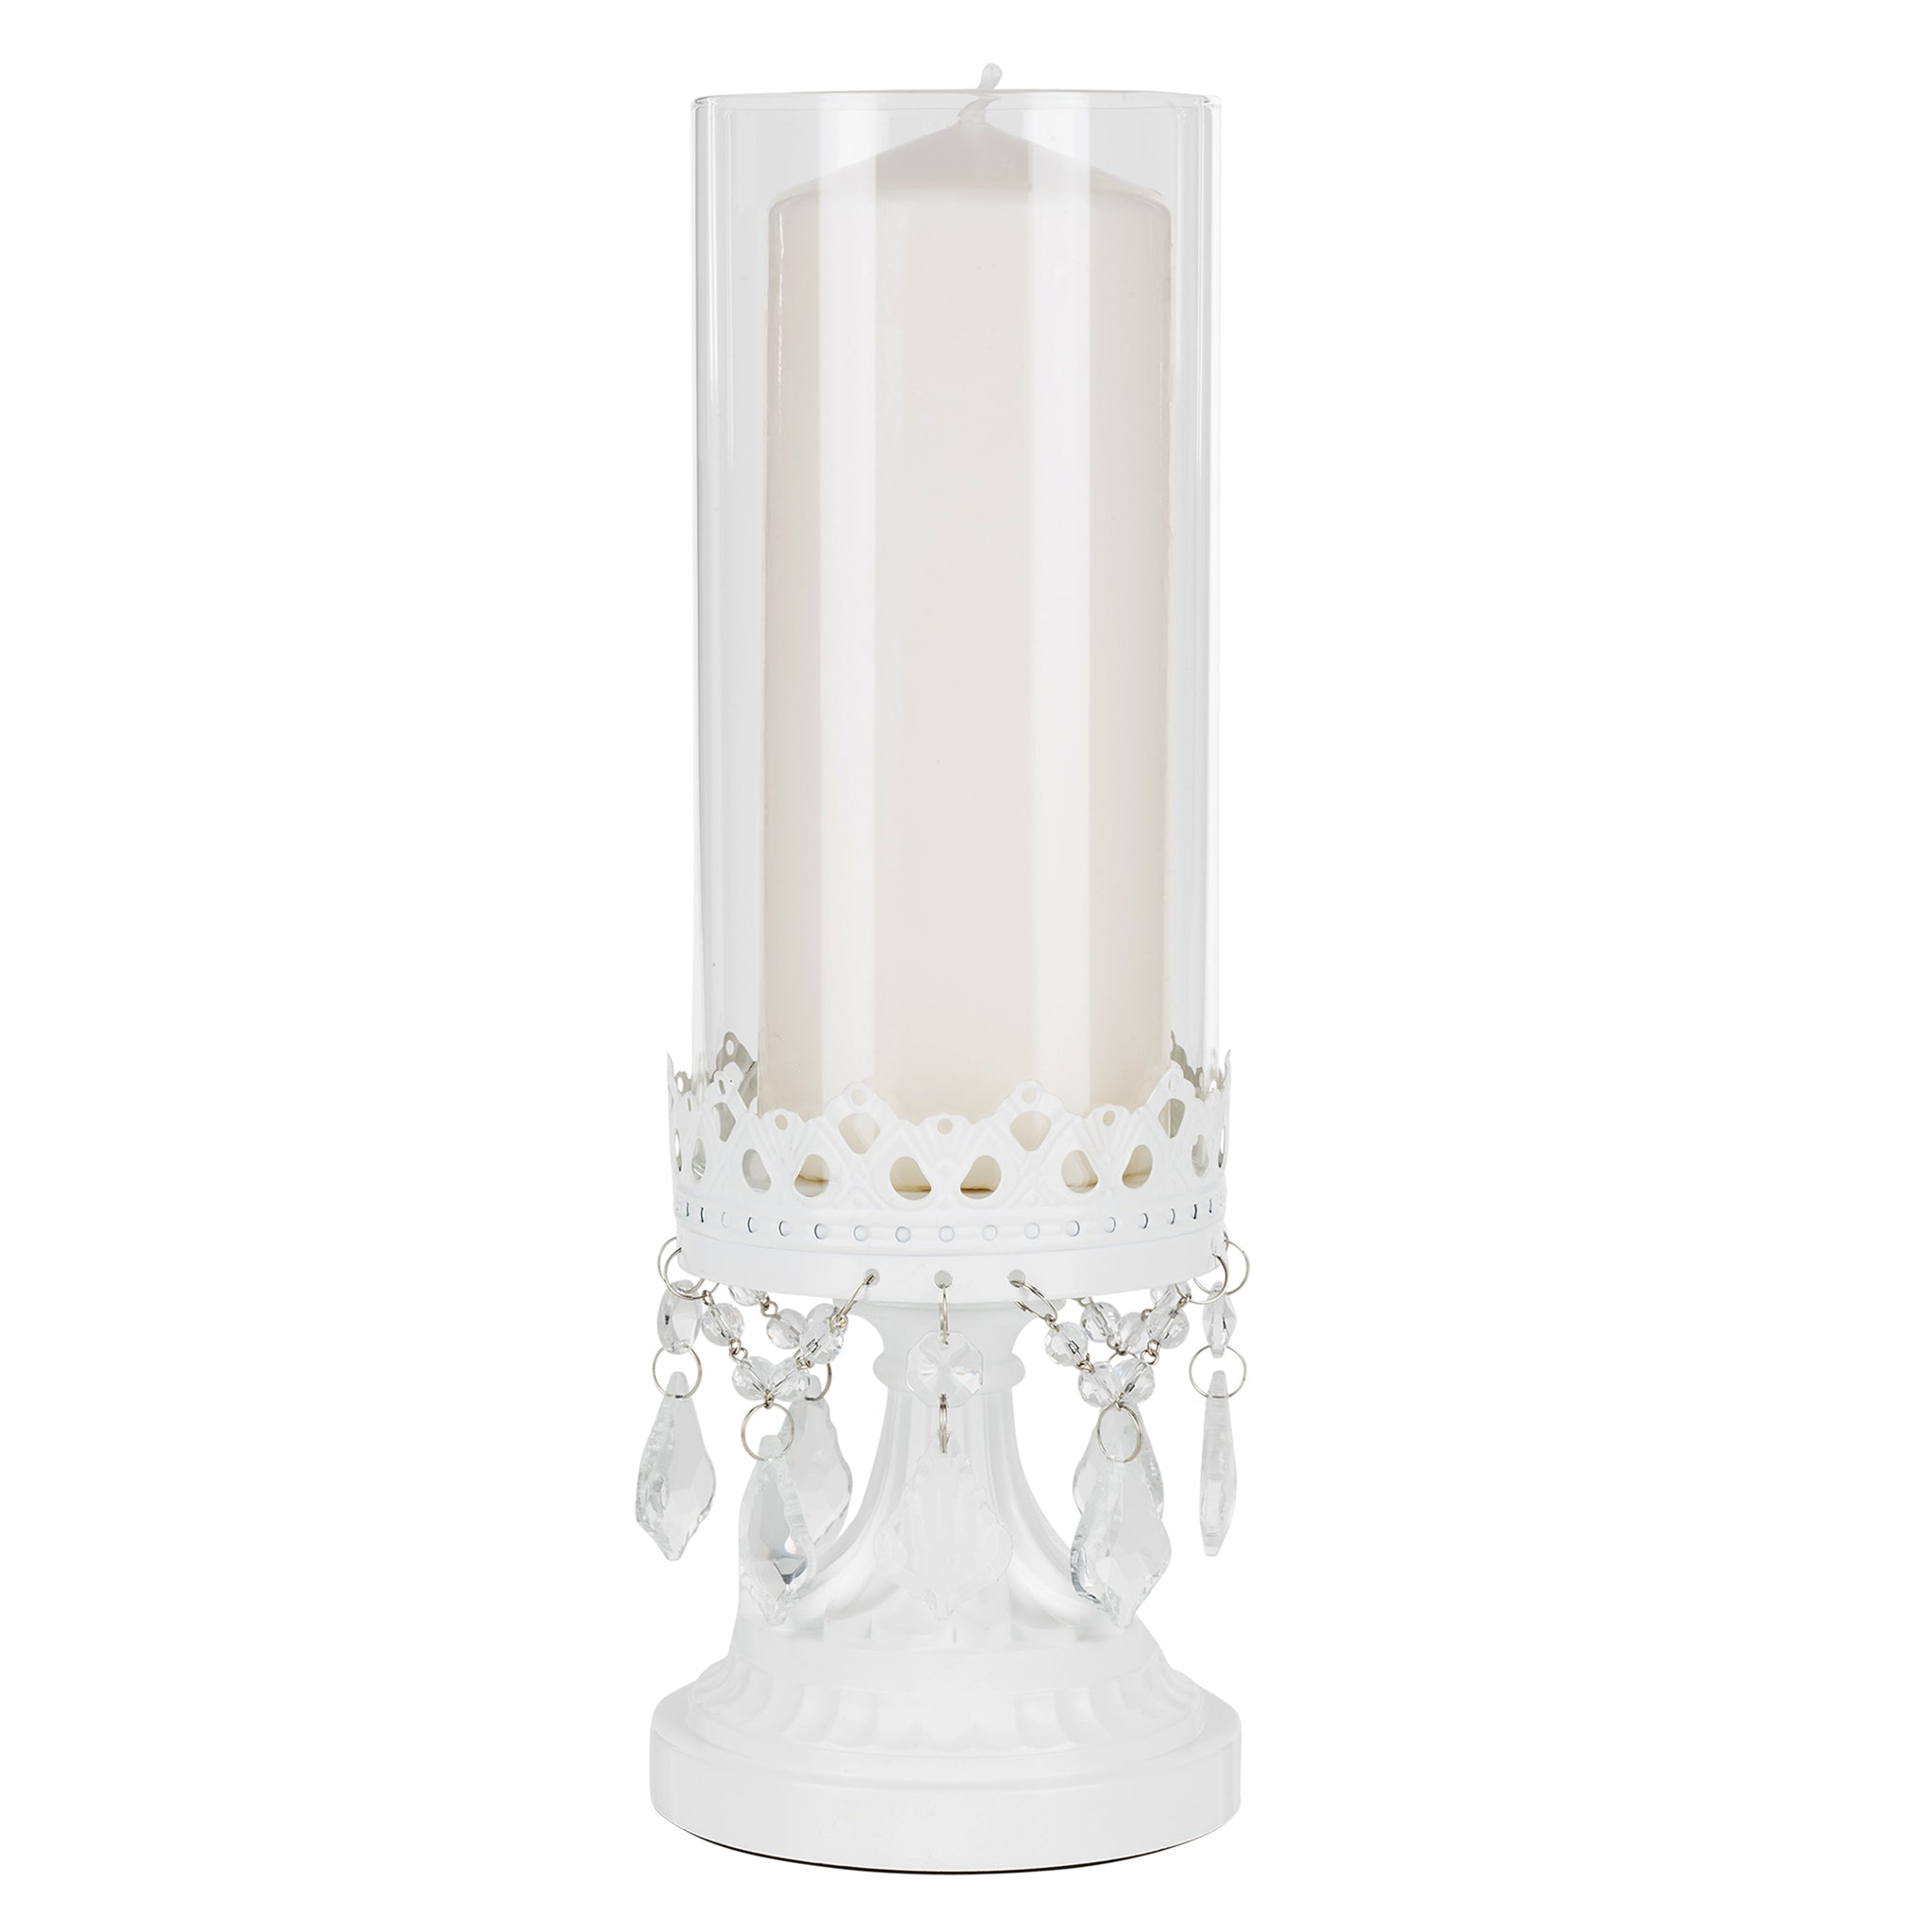 Amalfi Decor 12.75 Inch Crystal-Draped Rustic Glass Hurricane Candle Holder (White) | Stainless Steel Frame with Glass Crystals